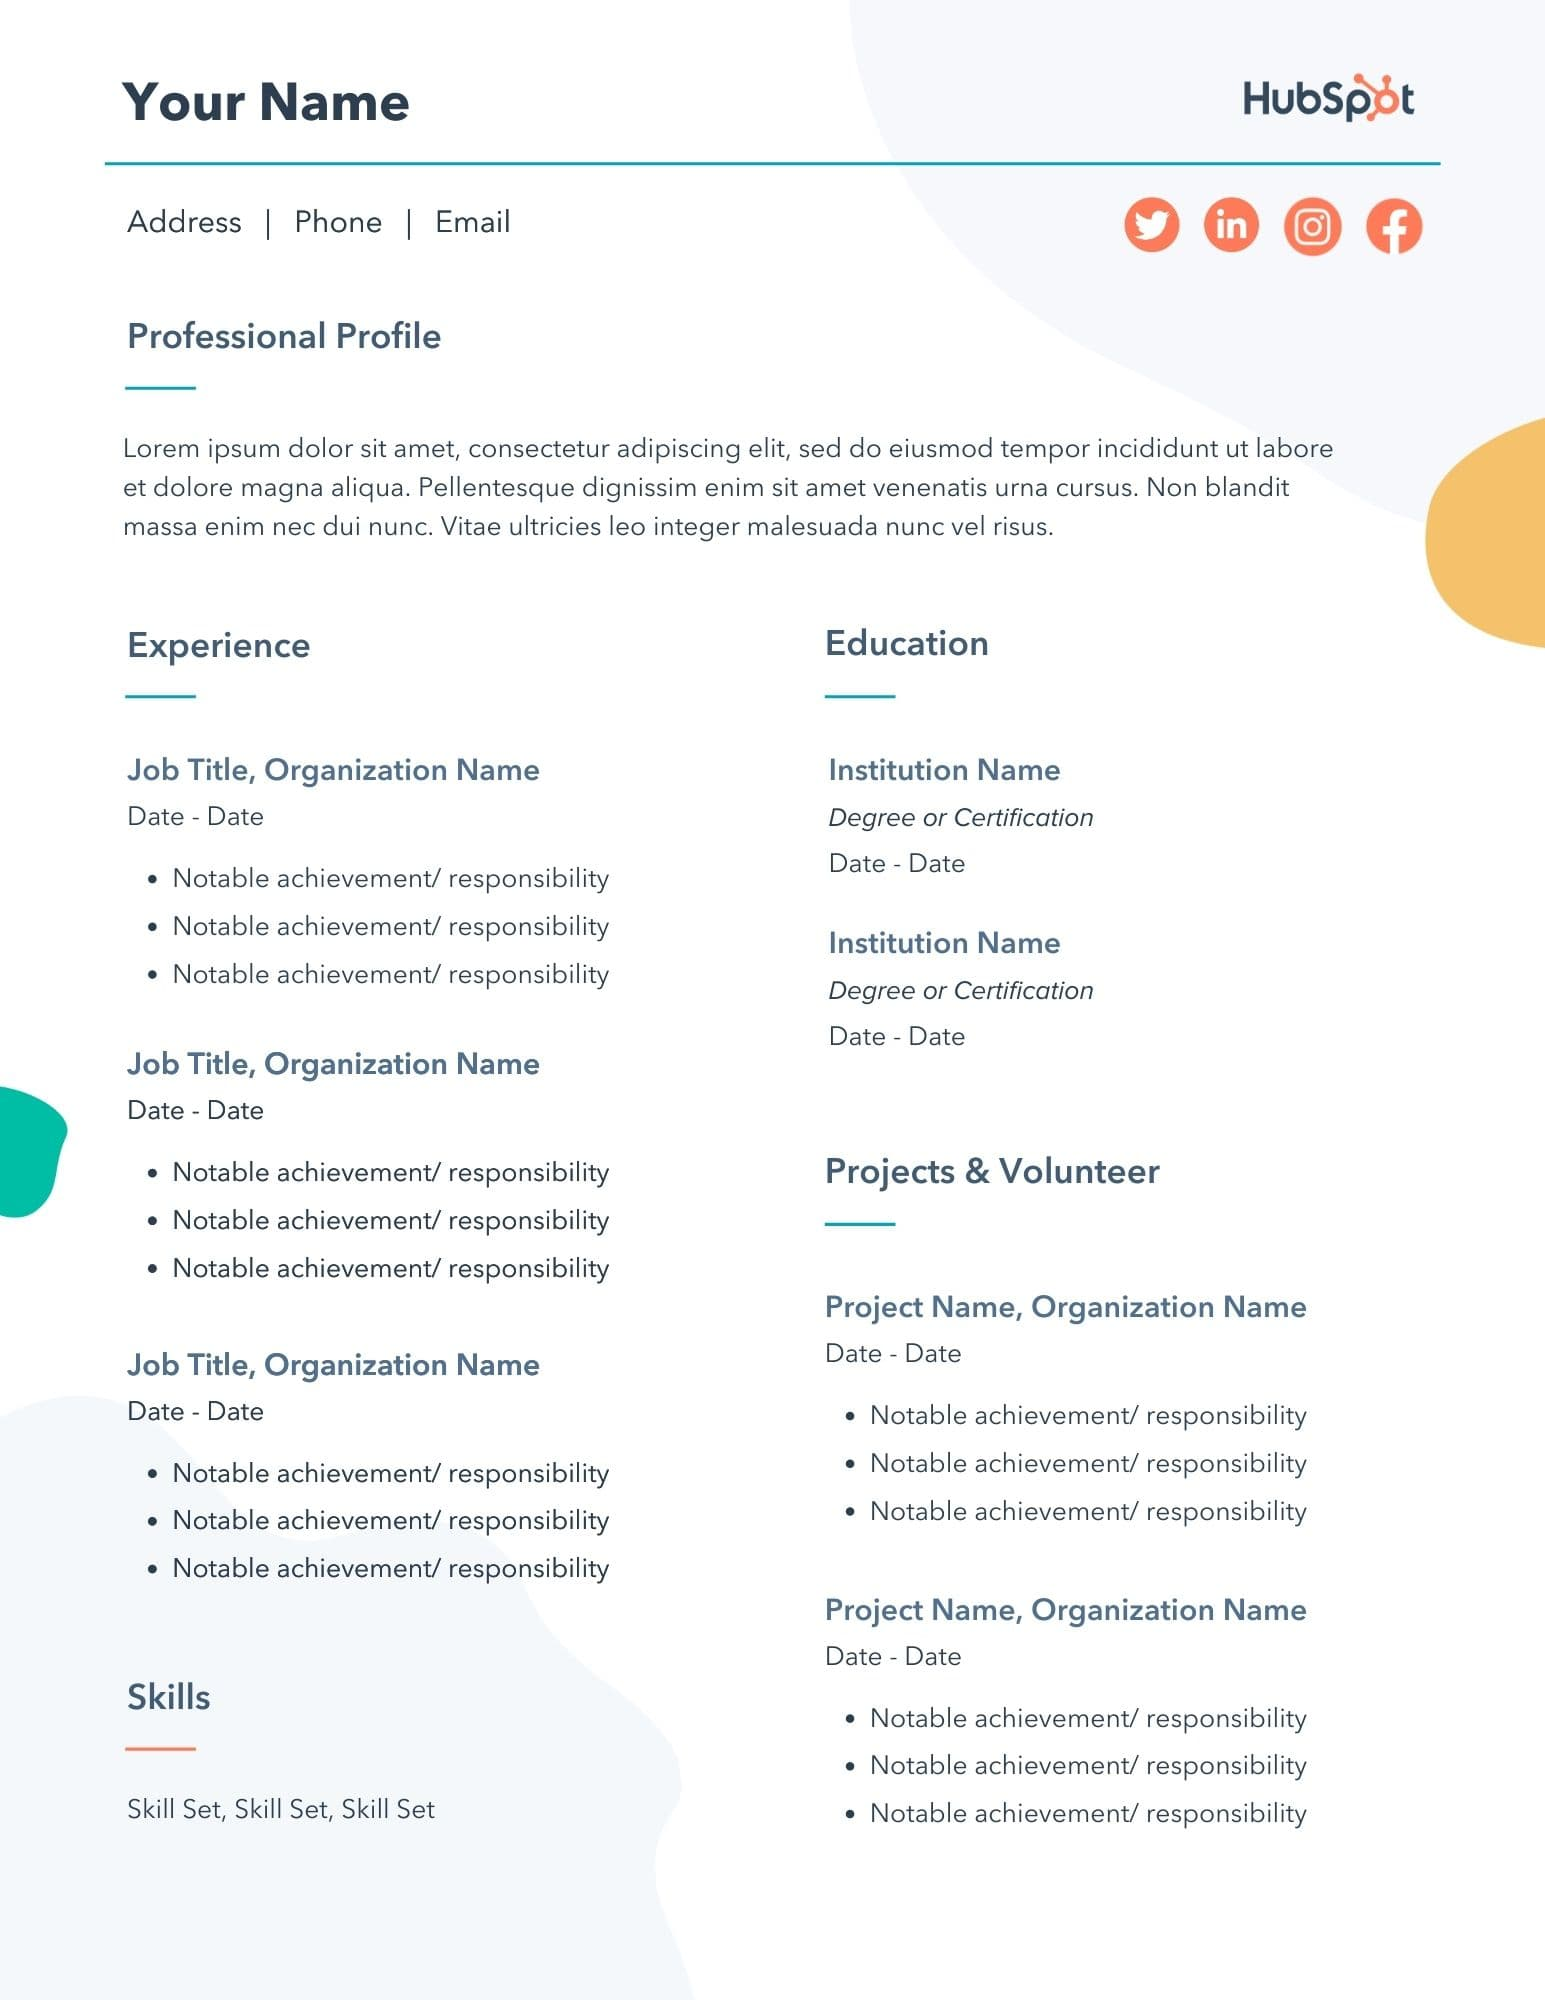 free resume templates for microsoft word to make your own achievement based template Resume Achievement Based Resume Template